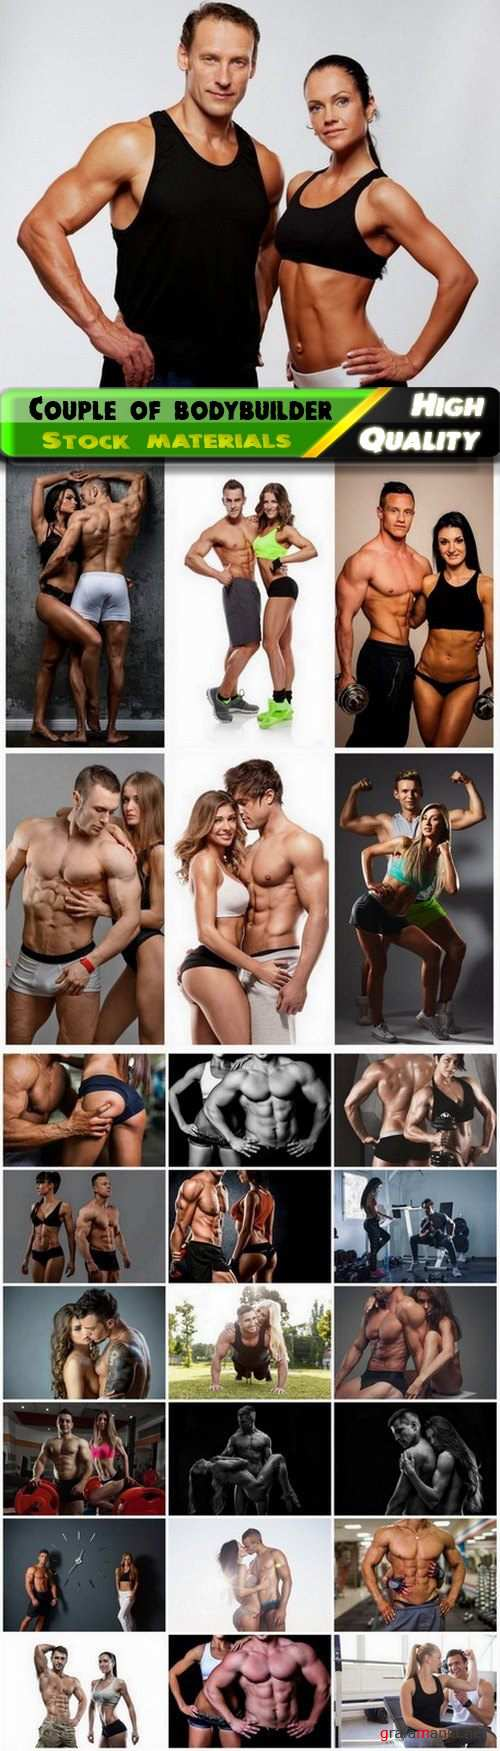 Sexy couple of bodybuilder with ideal body in gym - 25 HQ Jpg